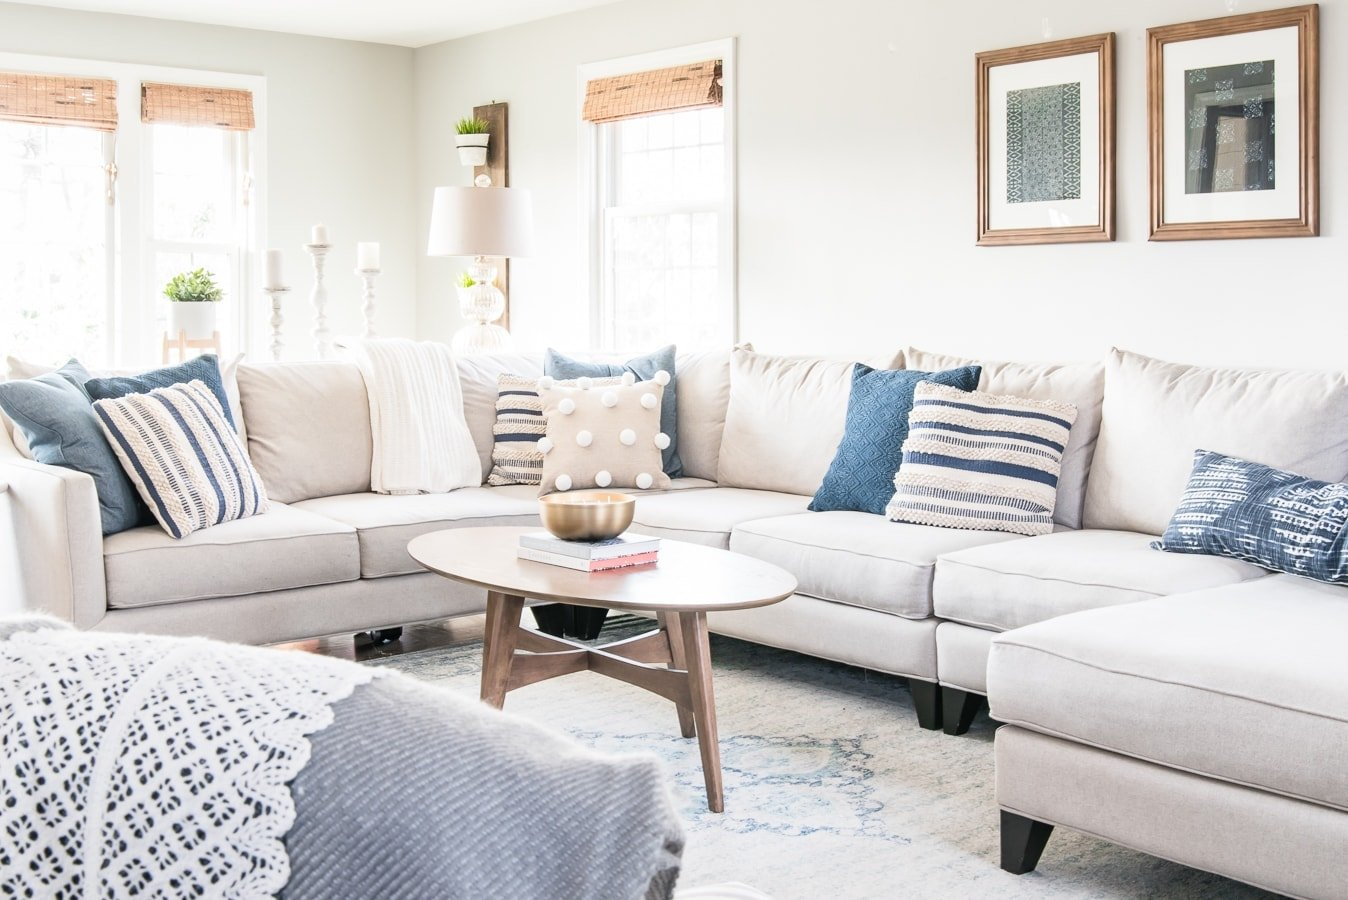 sectional couch with a coffee table and winter decor